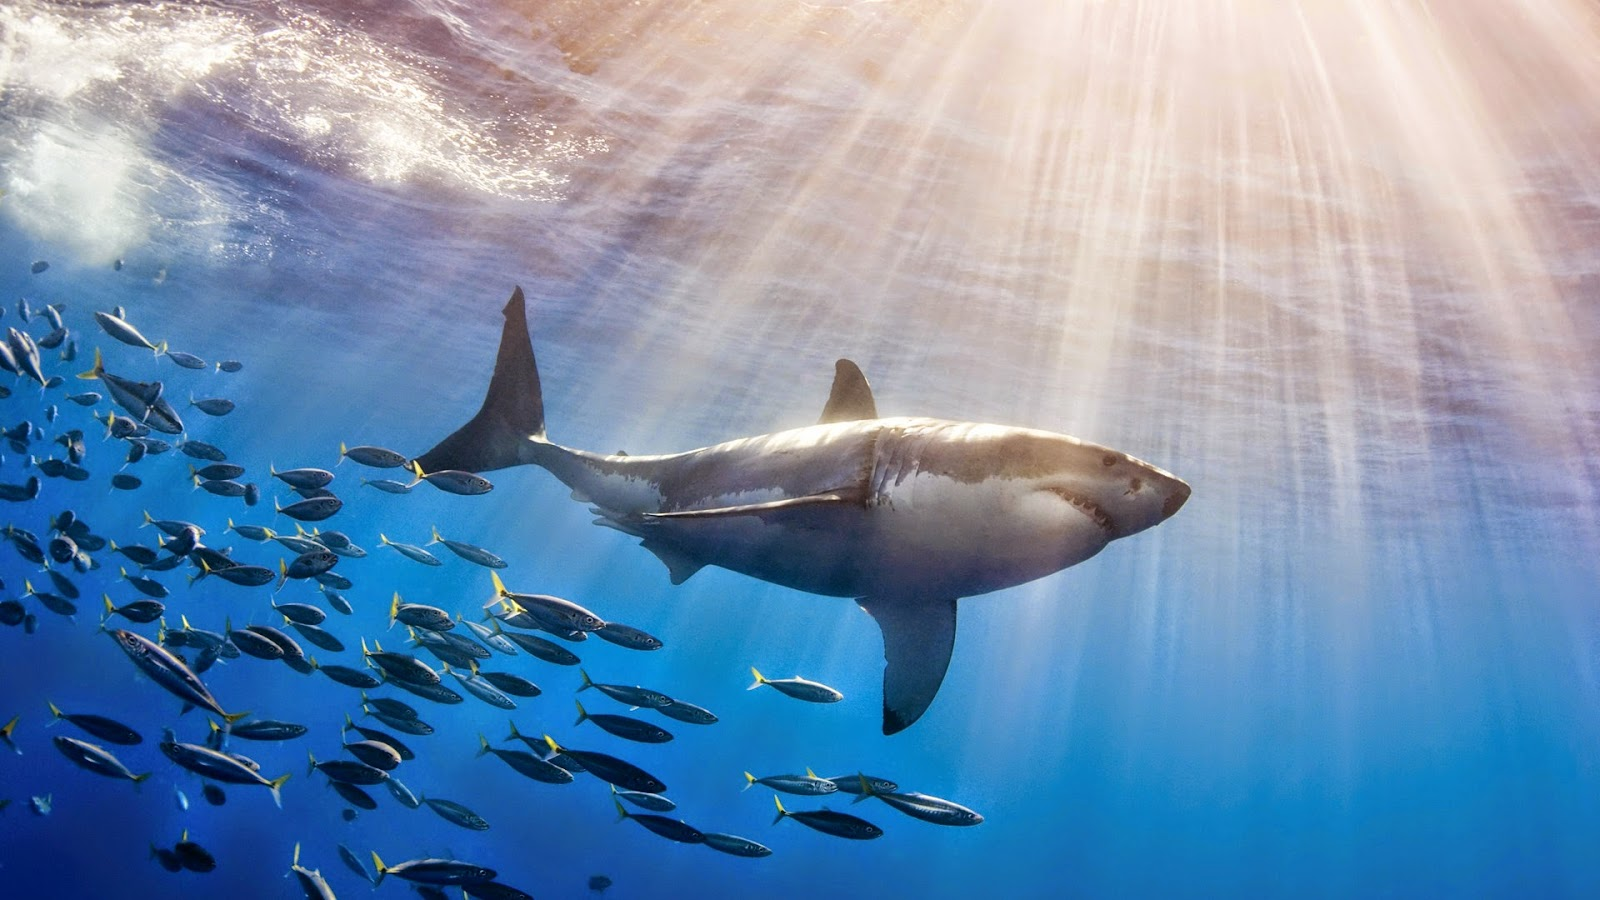 Shark - HD Wallpapers | Earth Blog